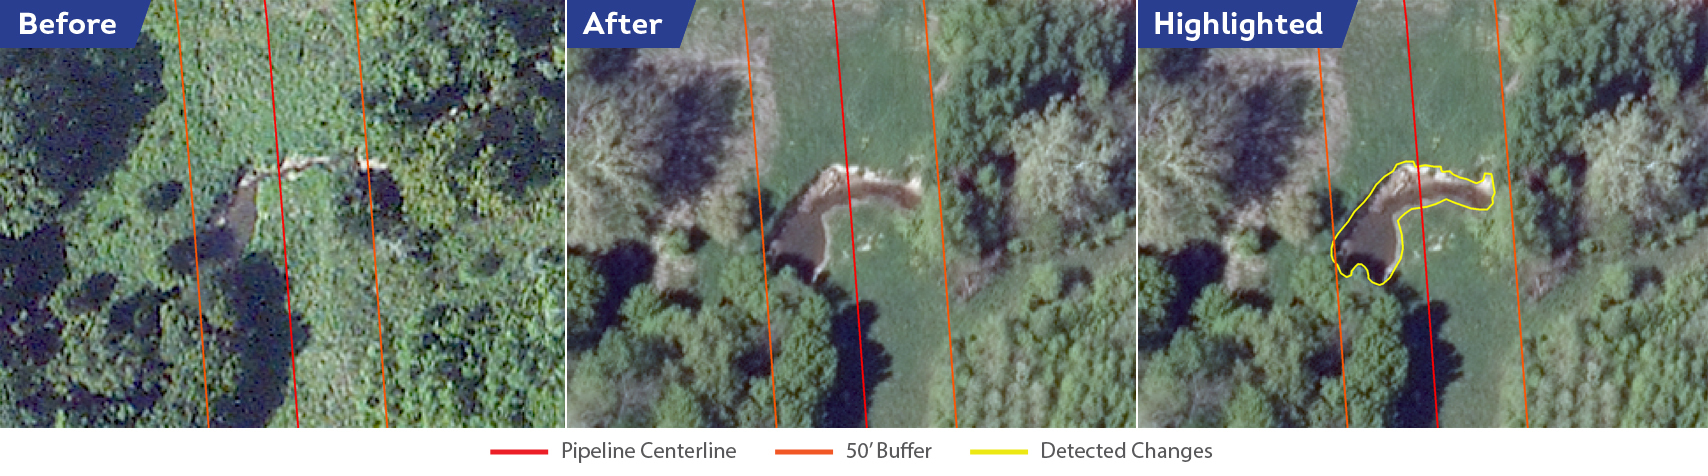 Another water crossing where the bank has eroded significantly. Whereas current surveying methods rely on aircraft pilot or field crew judgments, Satelytics allows for a clear side-by-side comparison of the dates.